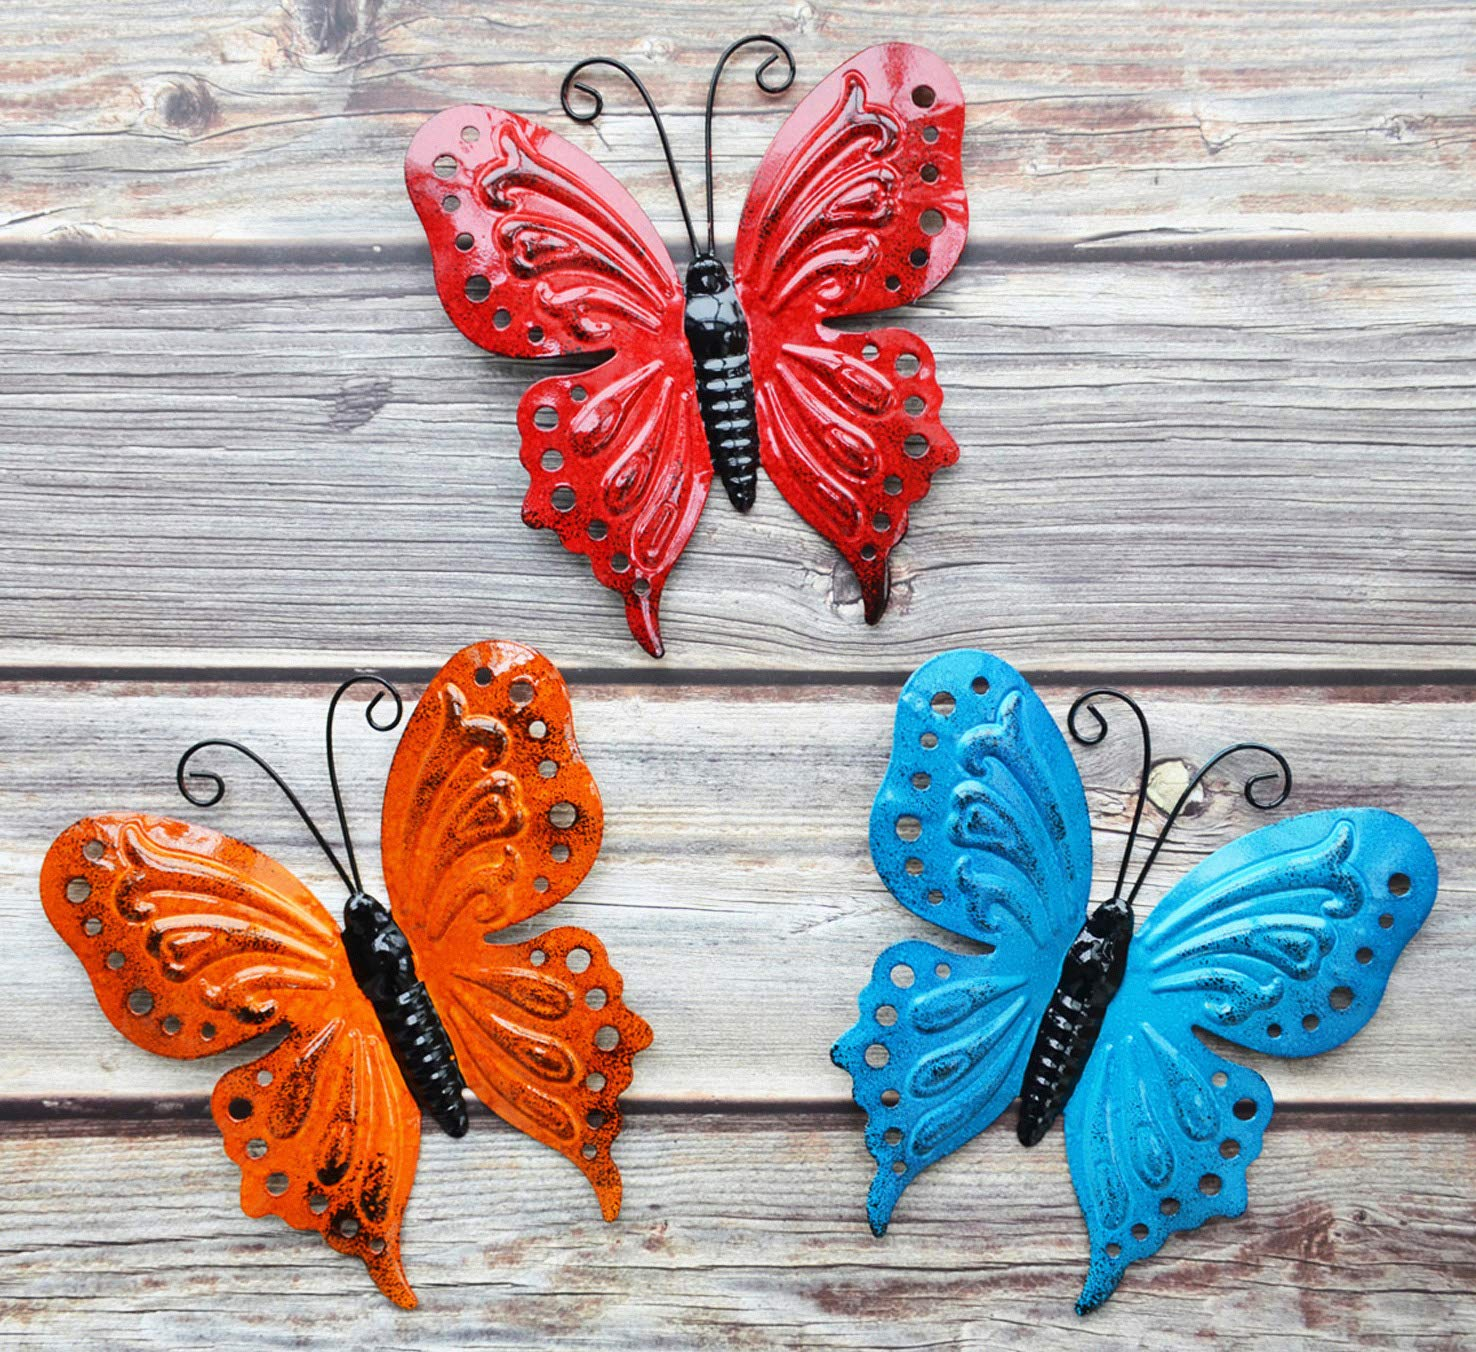 ShabbyDecor Metal Butterfly Hanging Decoration for Indoor or Outdoor Set of 3